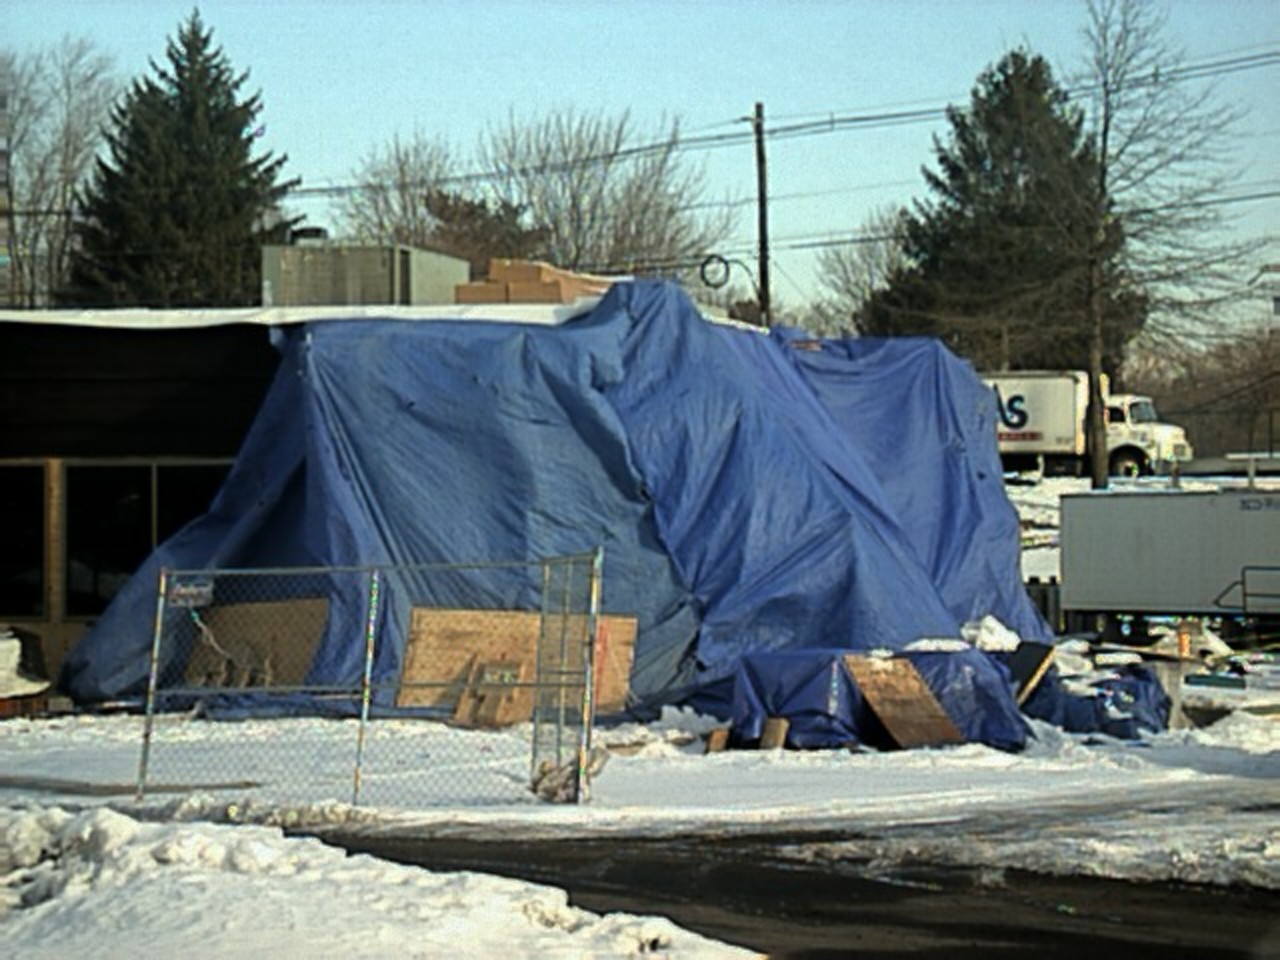 Another view of how the wind sucks the tarps close to the scaffold. It's like being in a giant blue lung.